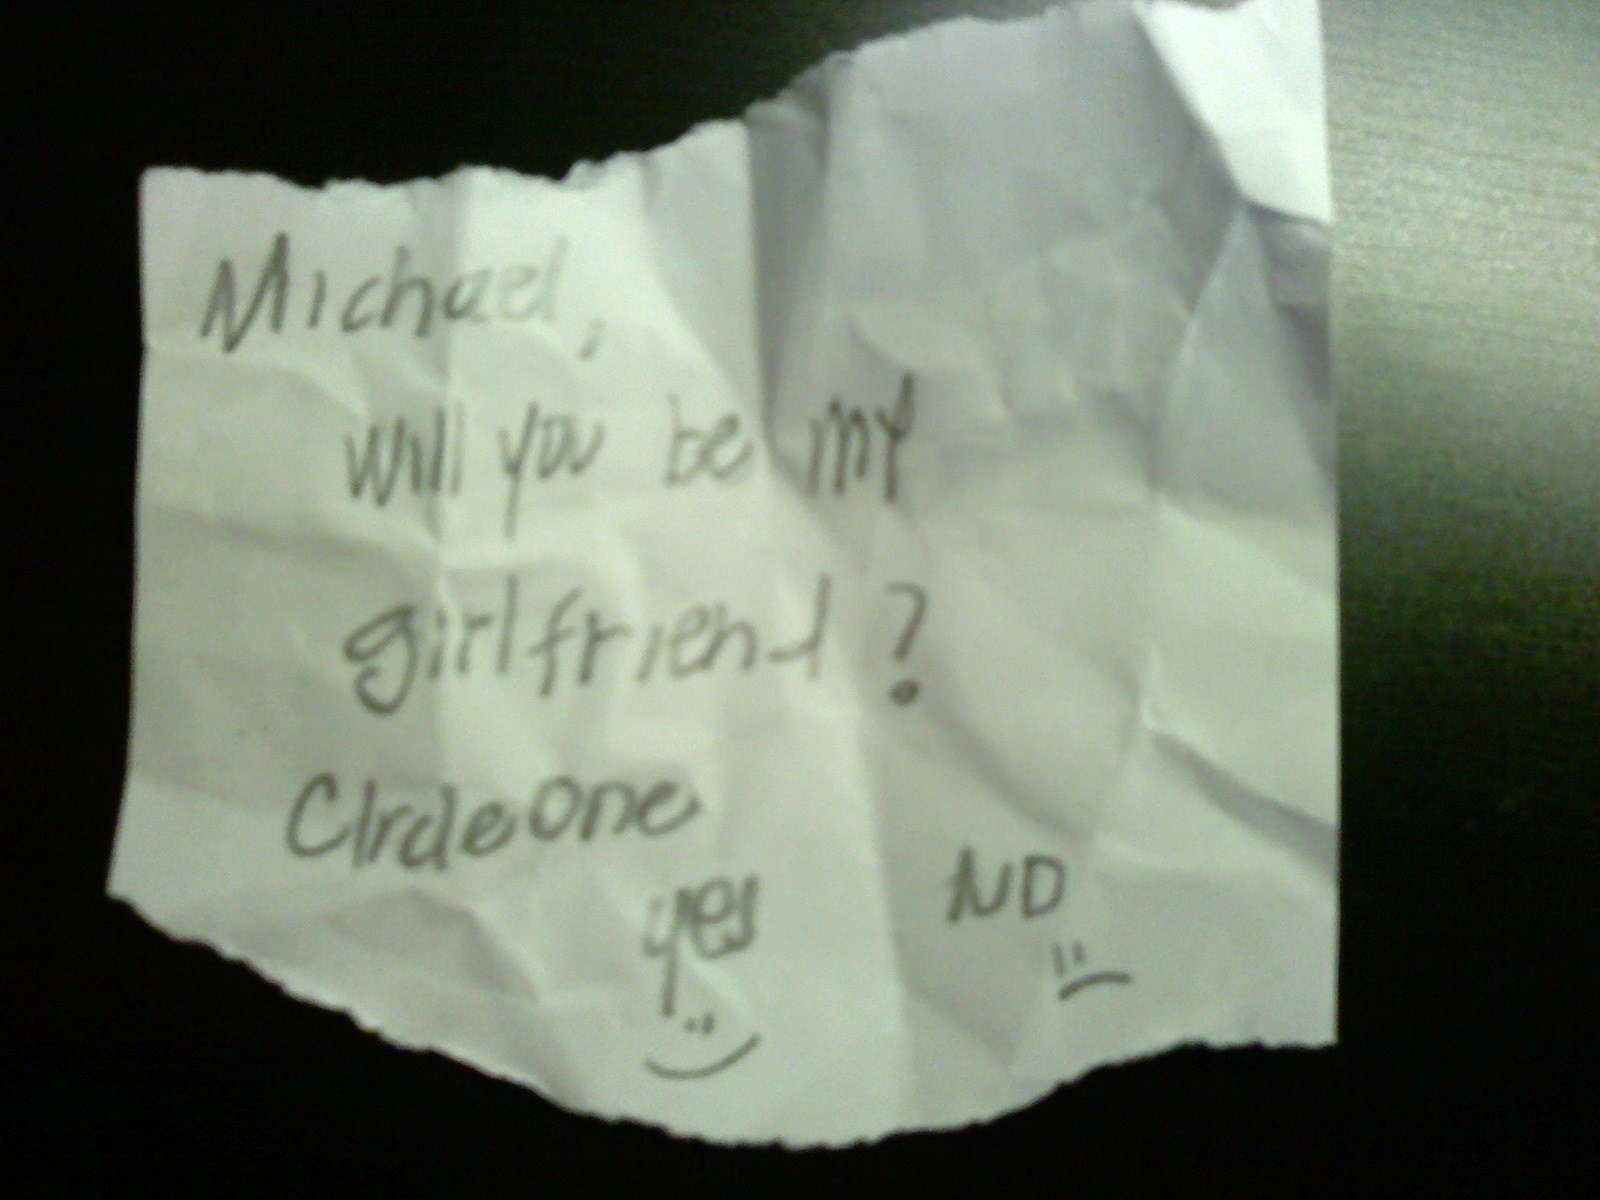 ALEXIS: Will you be my girlfriend note